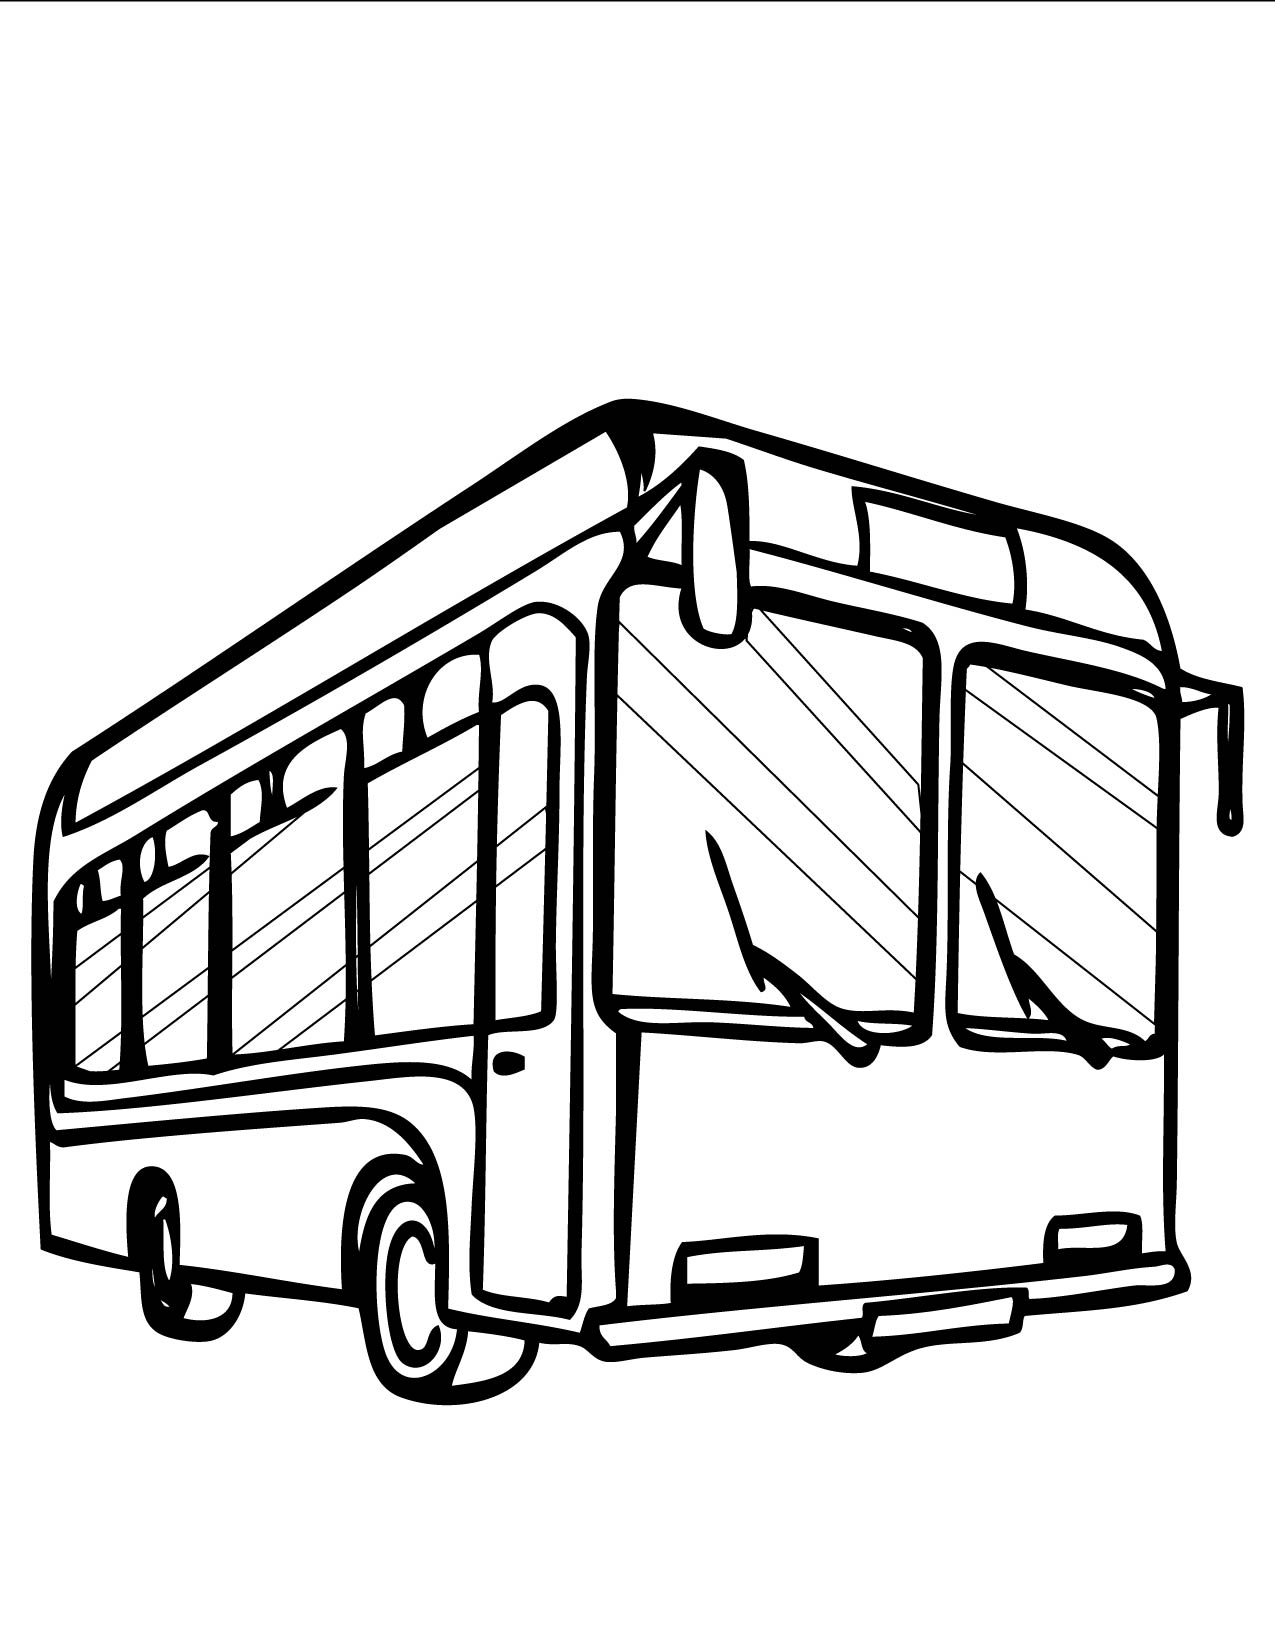 City Bus Clipart Black And White.